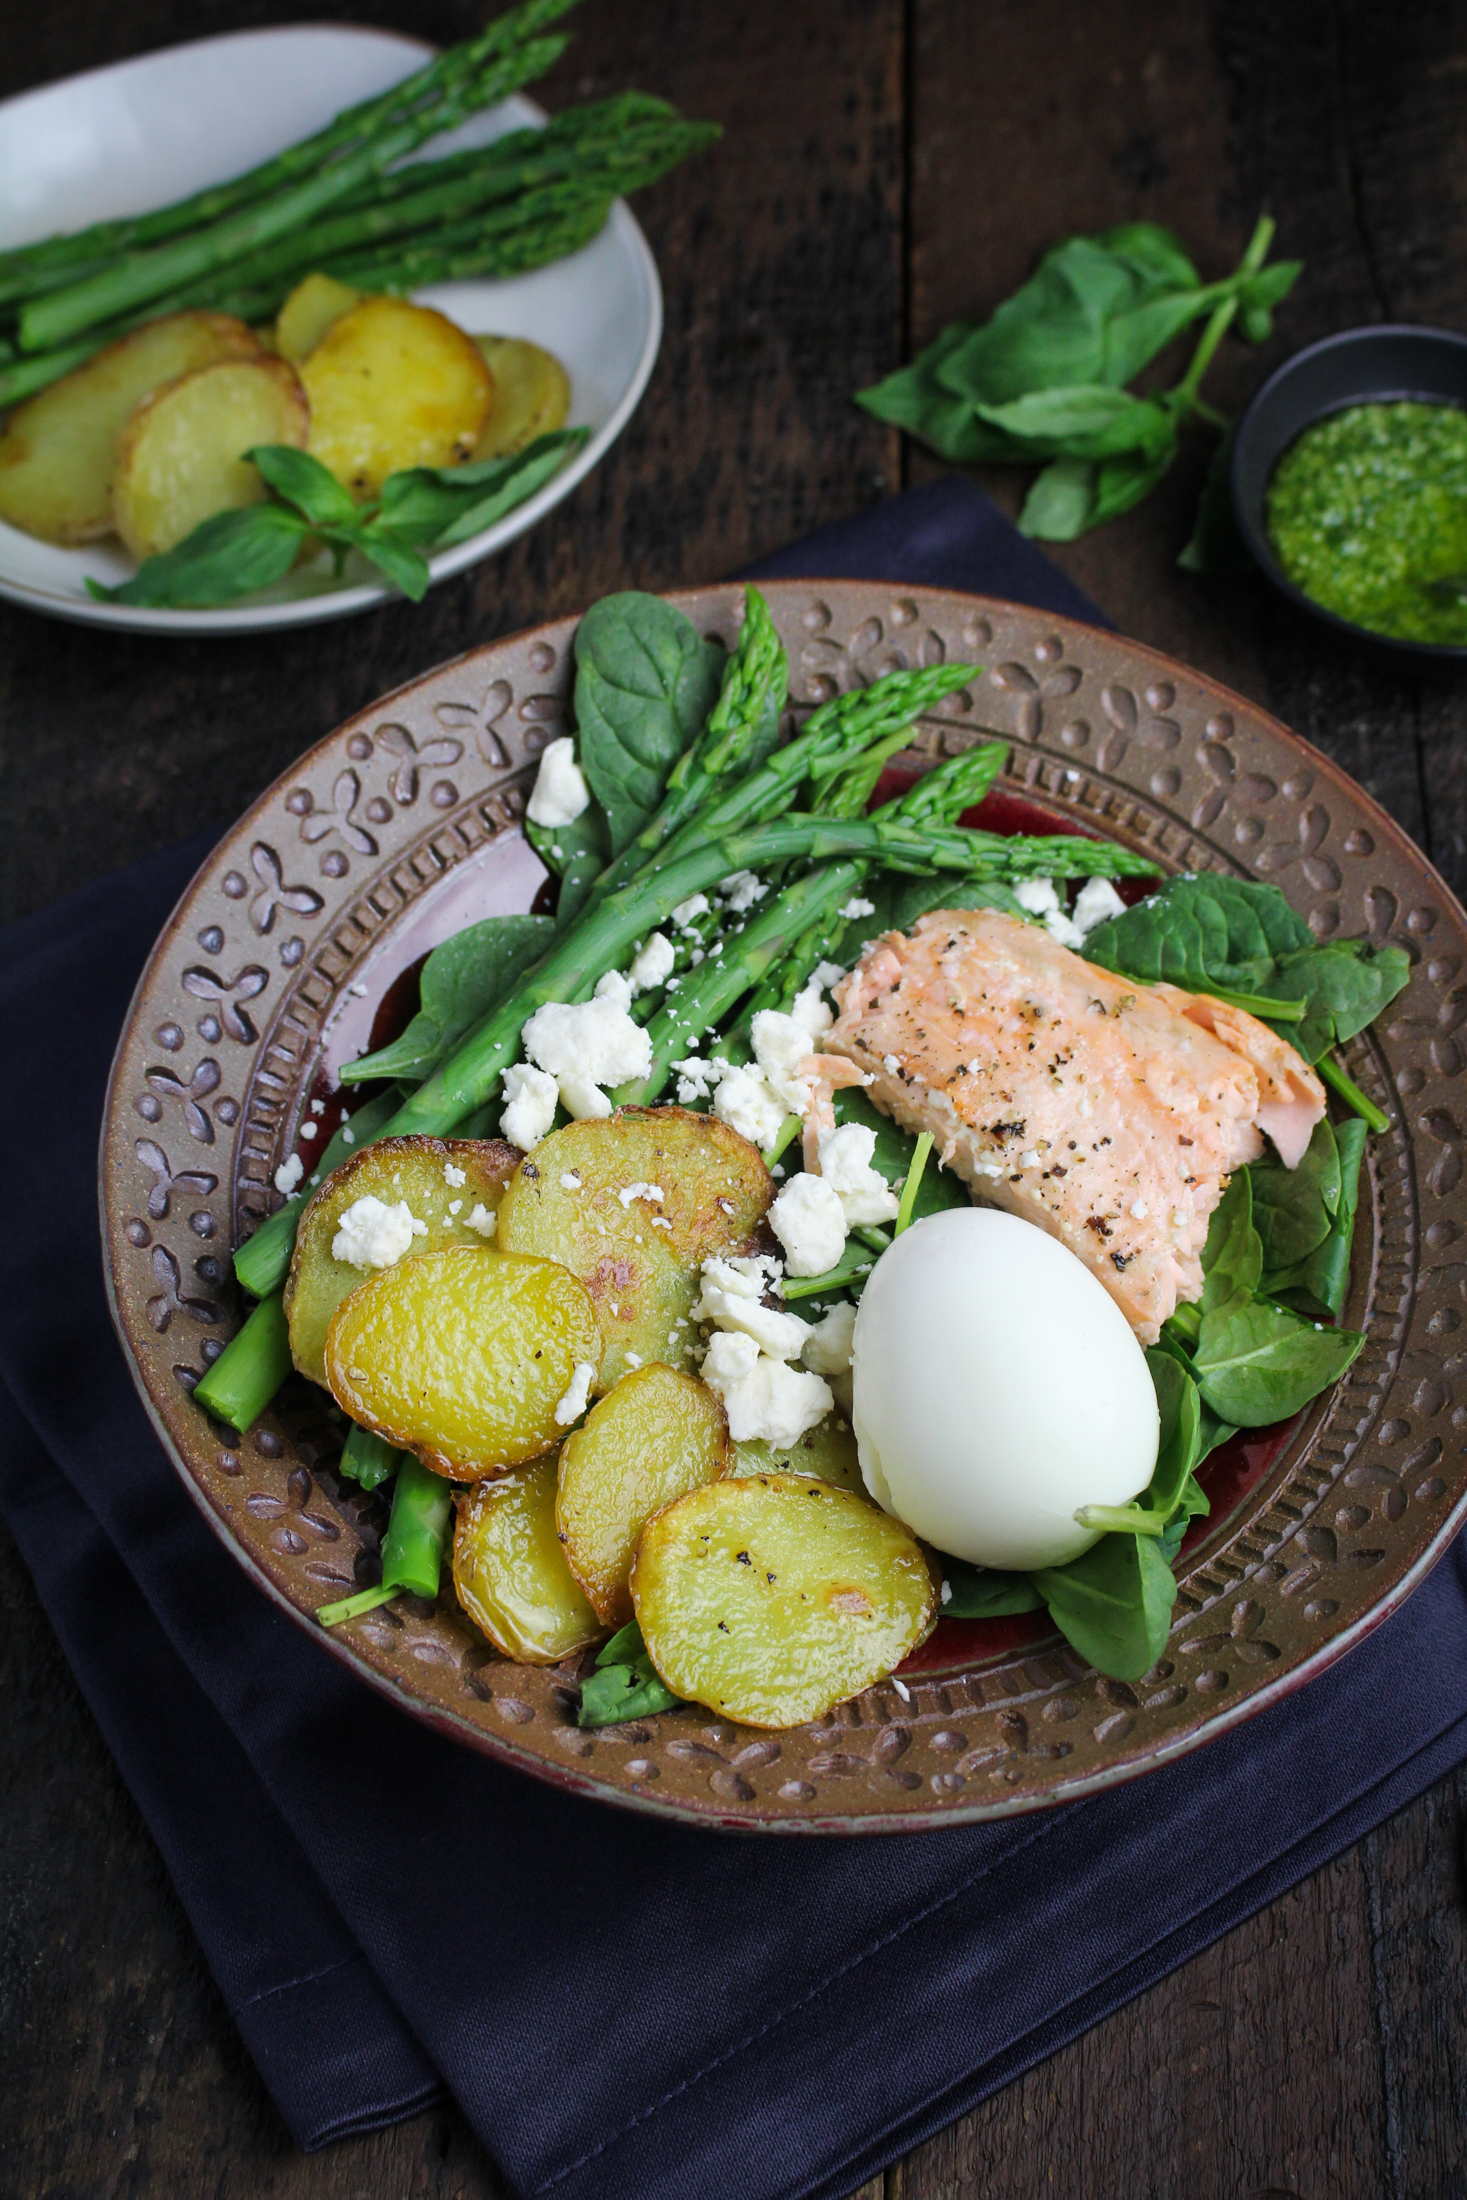 Salmon, Asparagus, and Roasted Potato Salad with Pesto Dressing and Soft-Boiled Egg {Katie at the Kitchen Door}